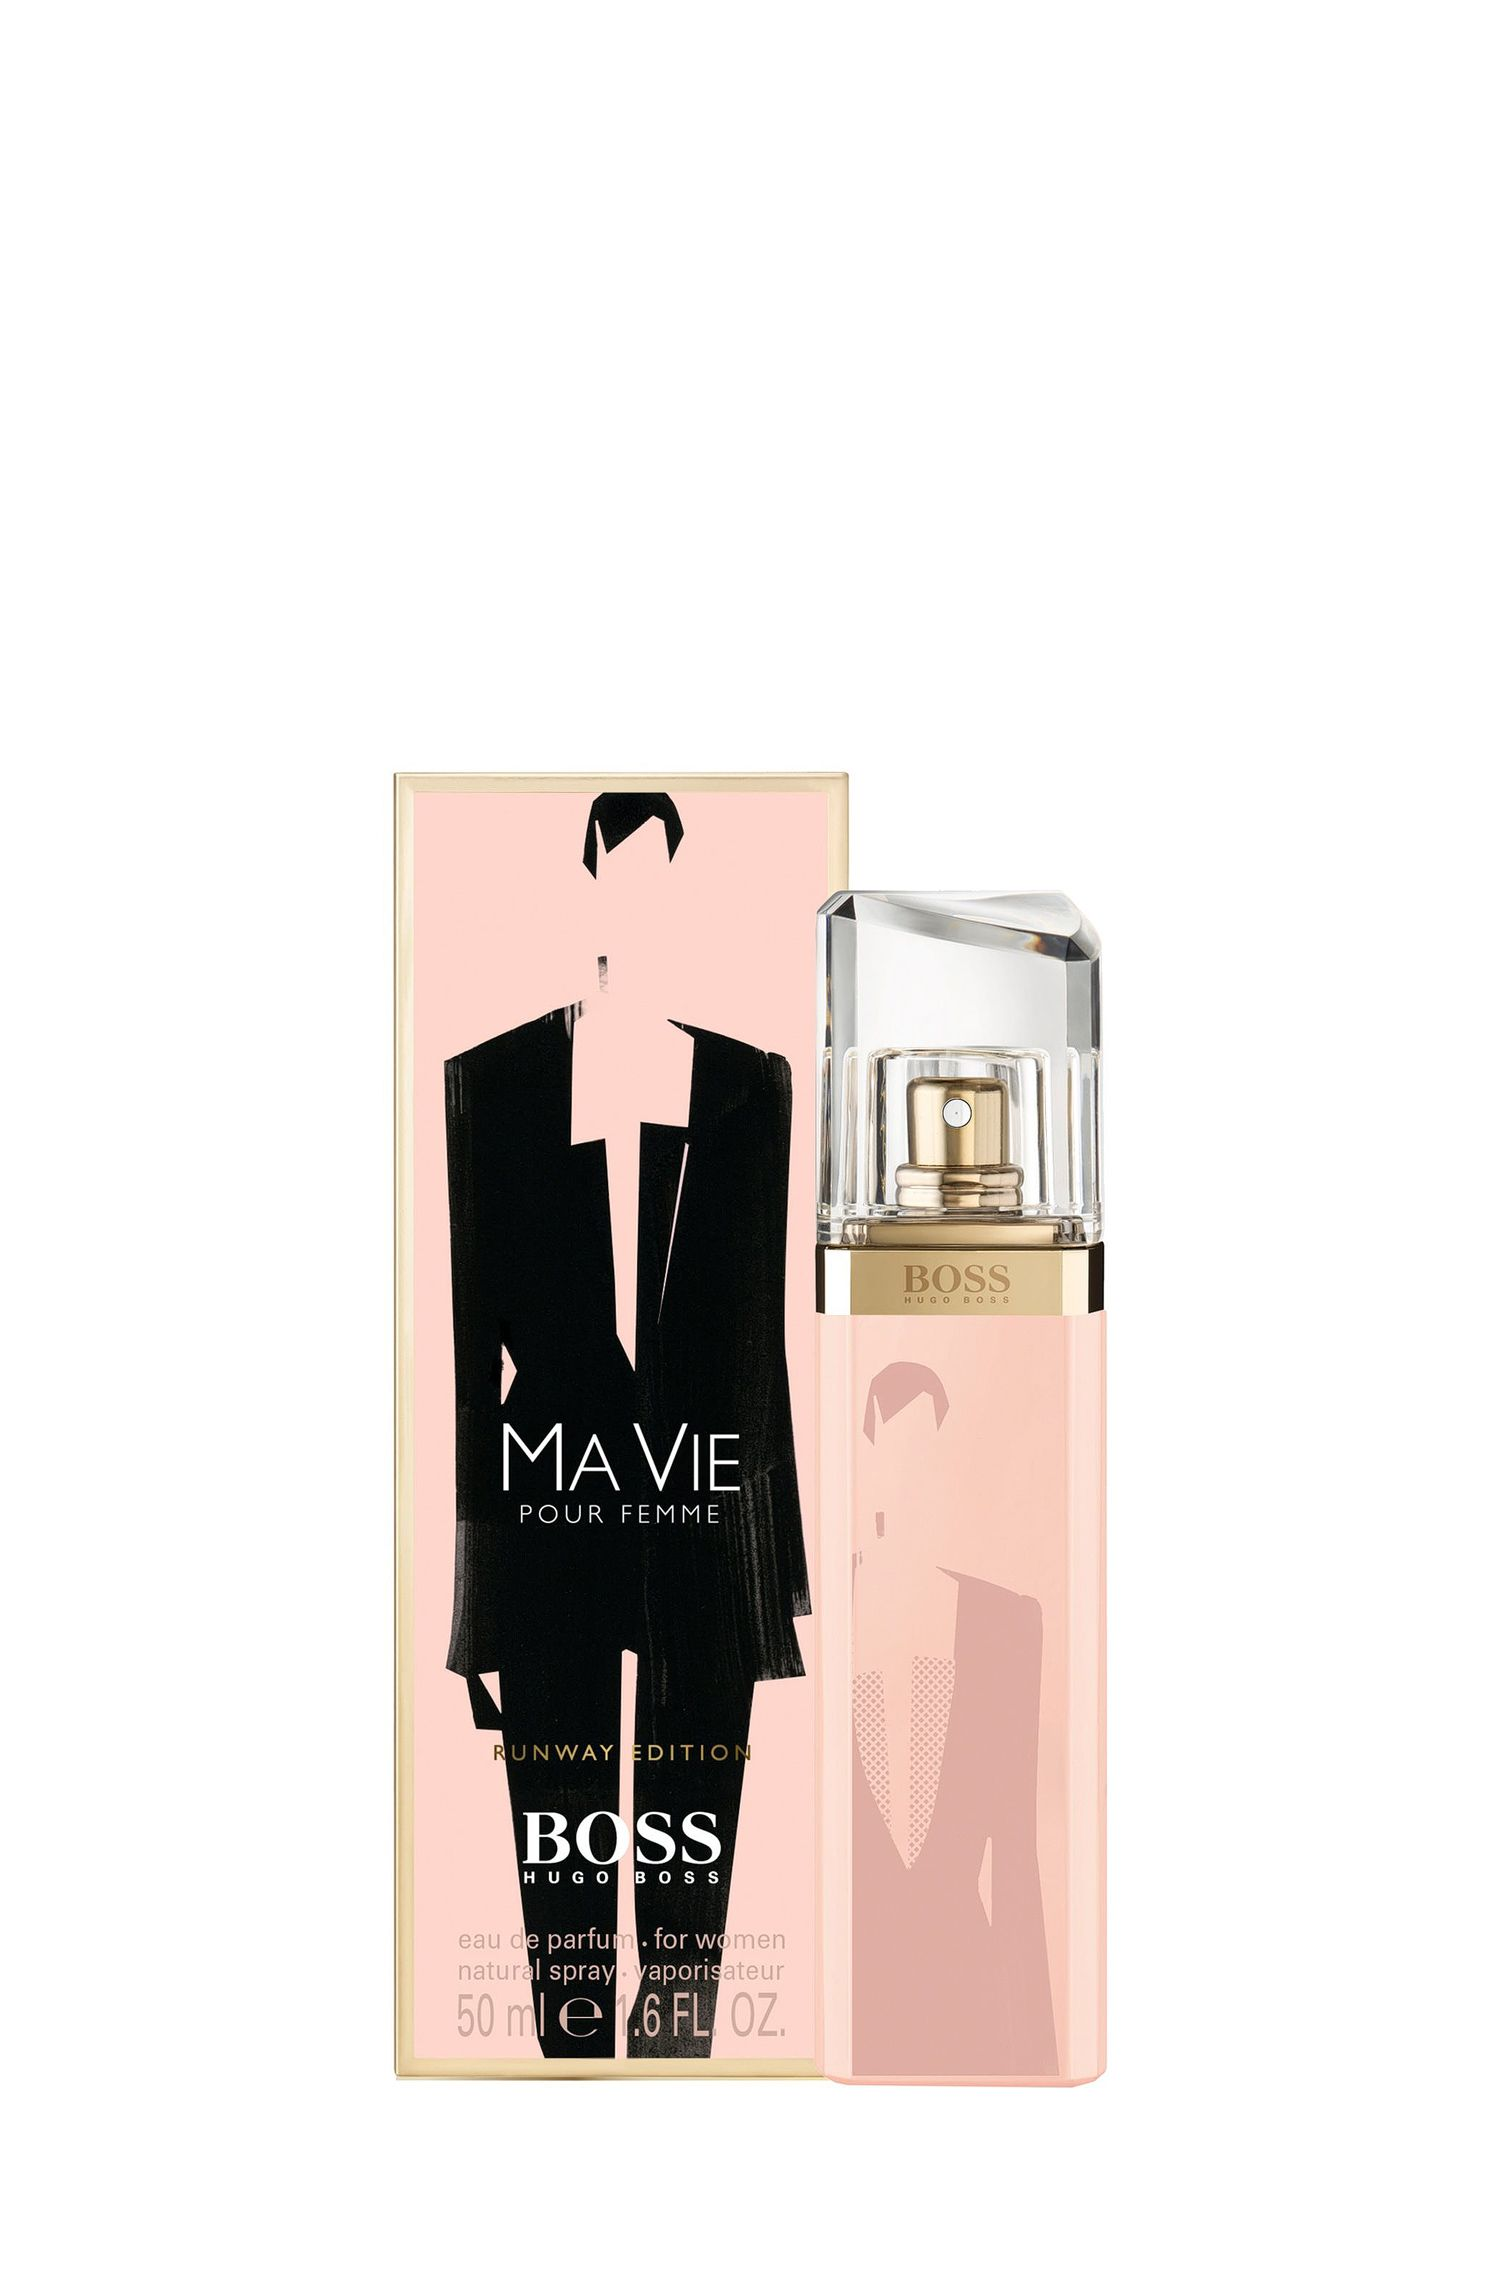 'BOSS Ma Vie Runway Edition' Eau de Parfum 50 ml, Assorted-Pre-Pack